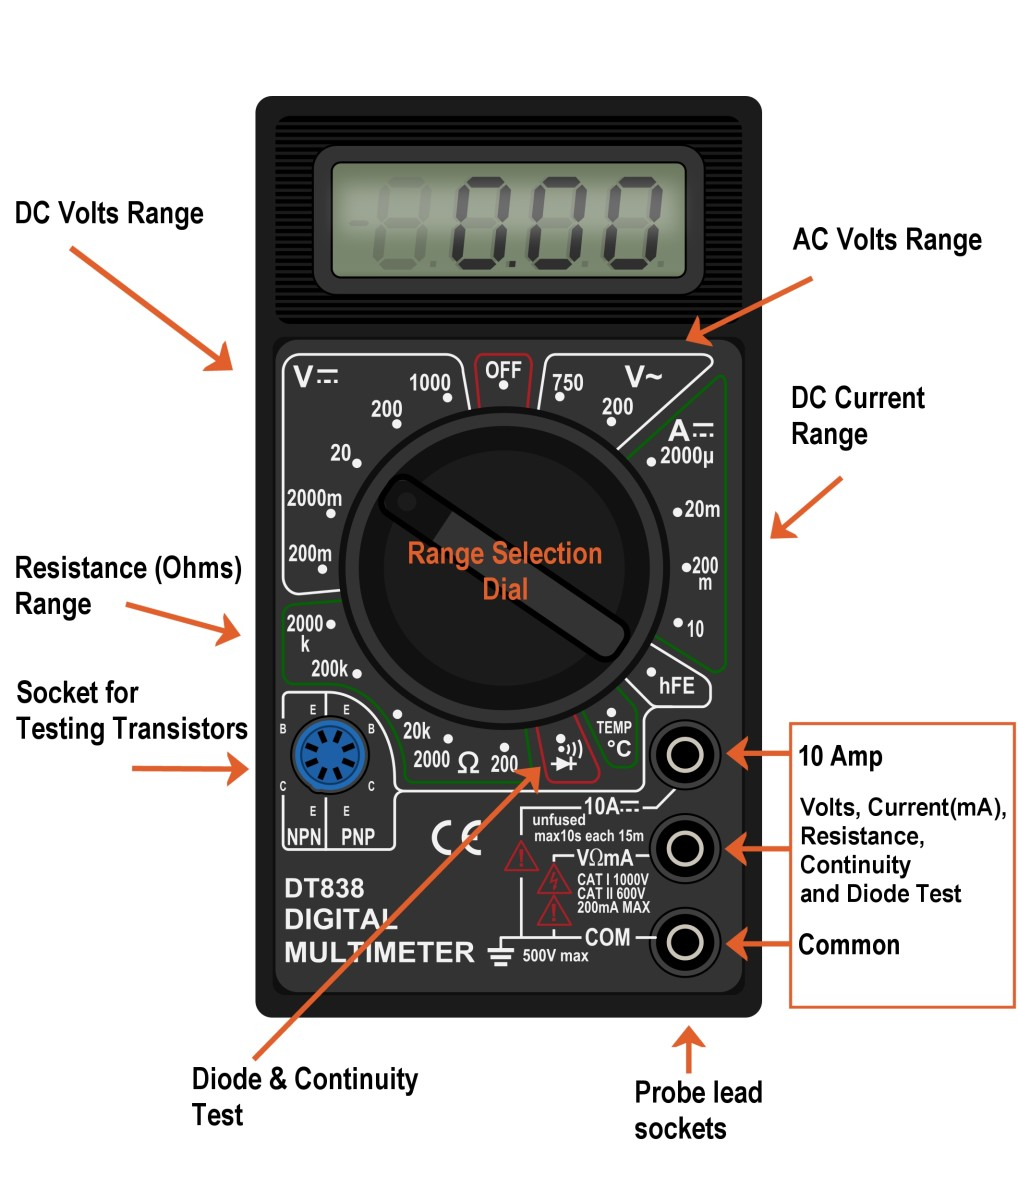 A range selector dial is used to select the function (volts, amps, resistance) and range. Note the symbols used for AC and DC. See graphic further down this article for an explanation.